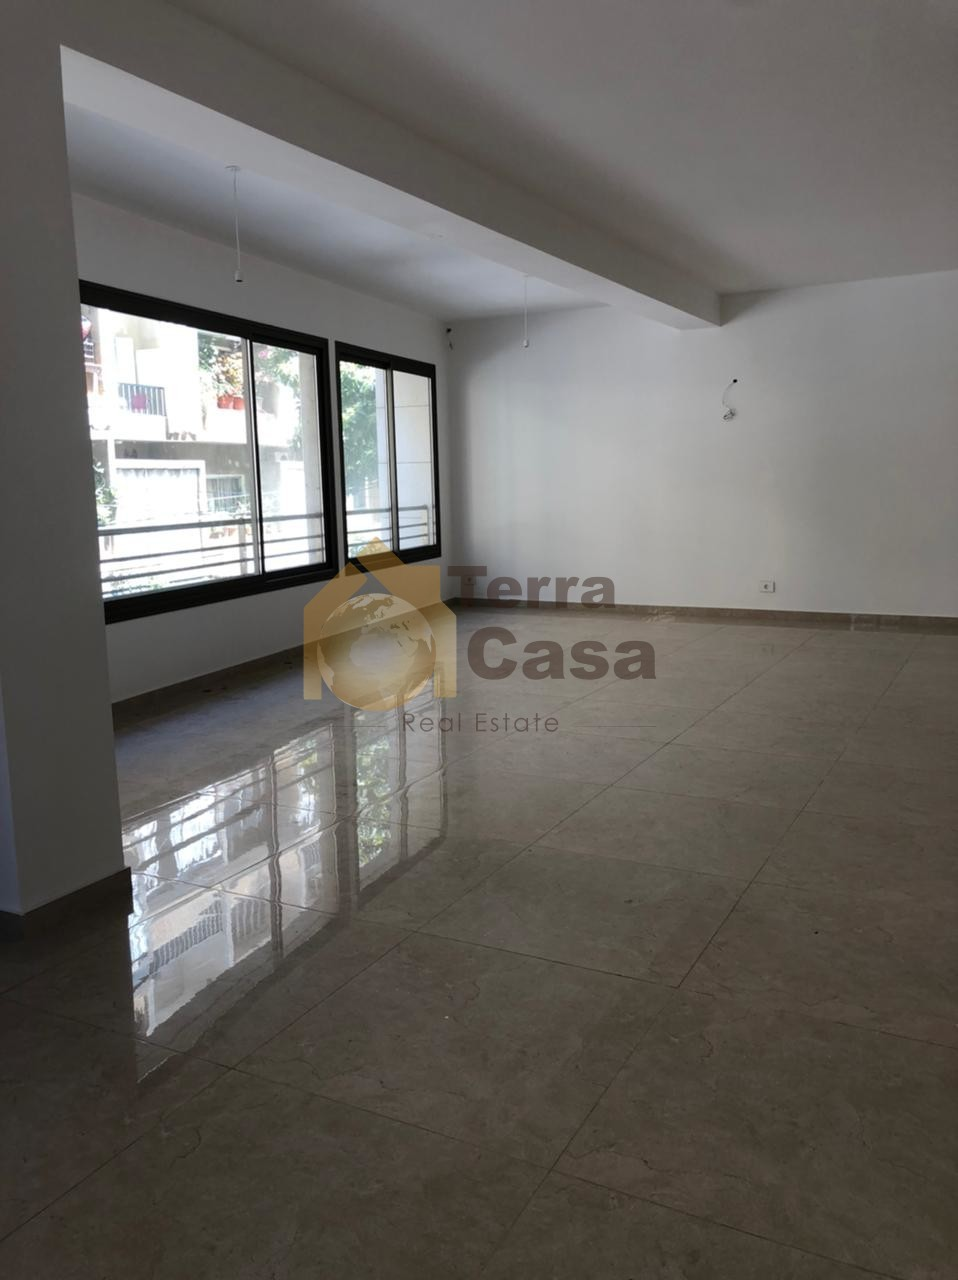 Apartment brand new luxurious cash payment.